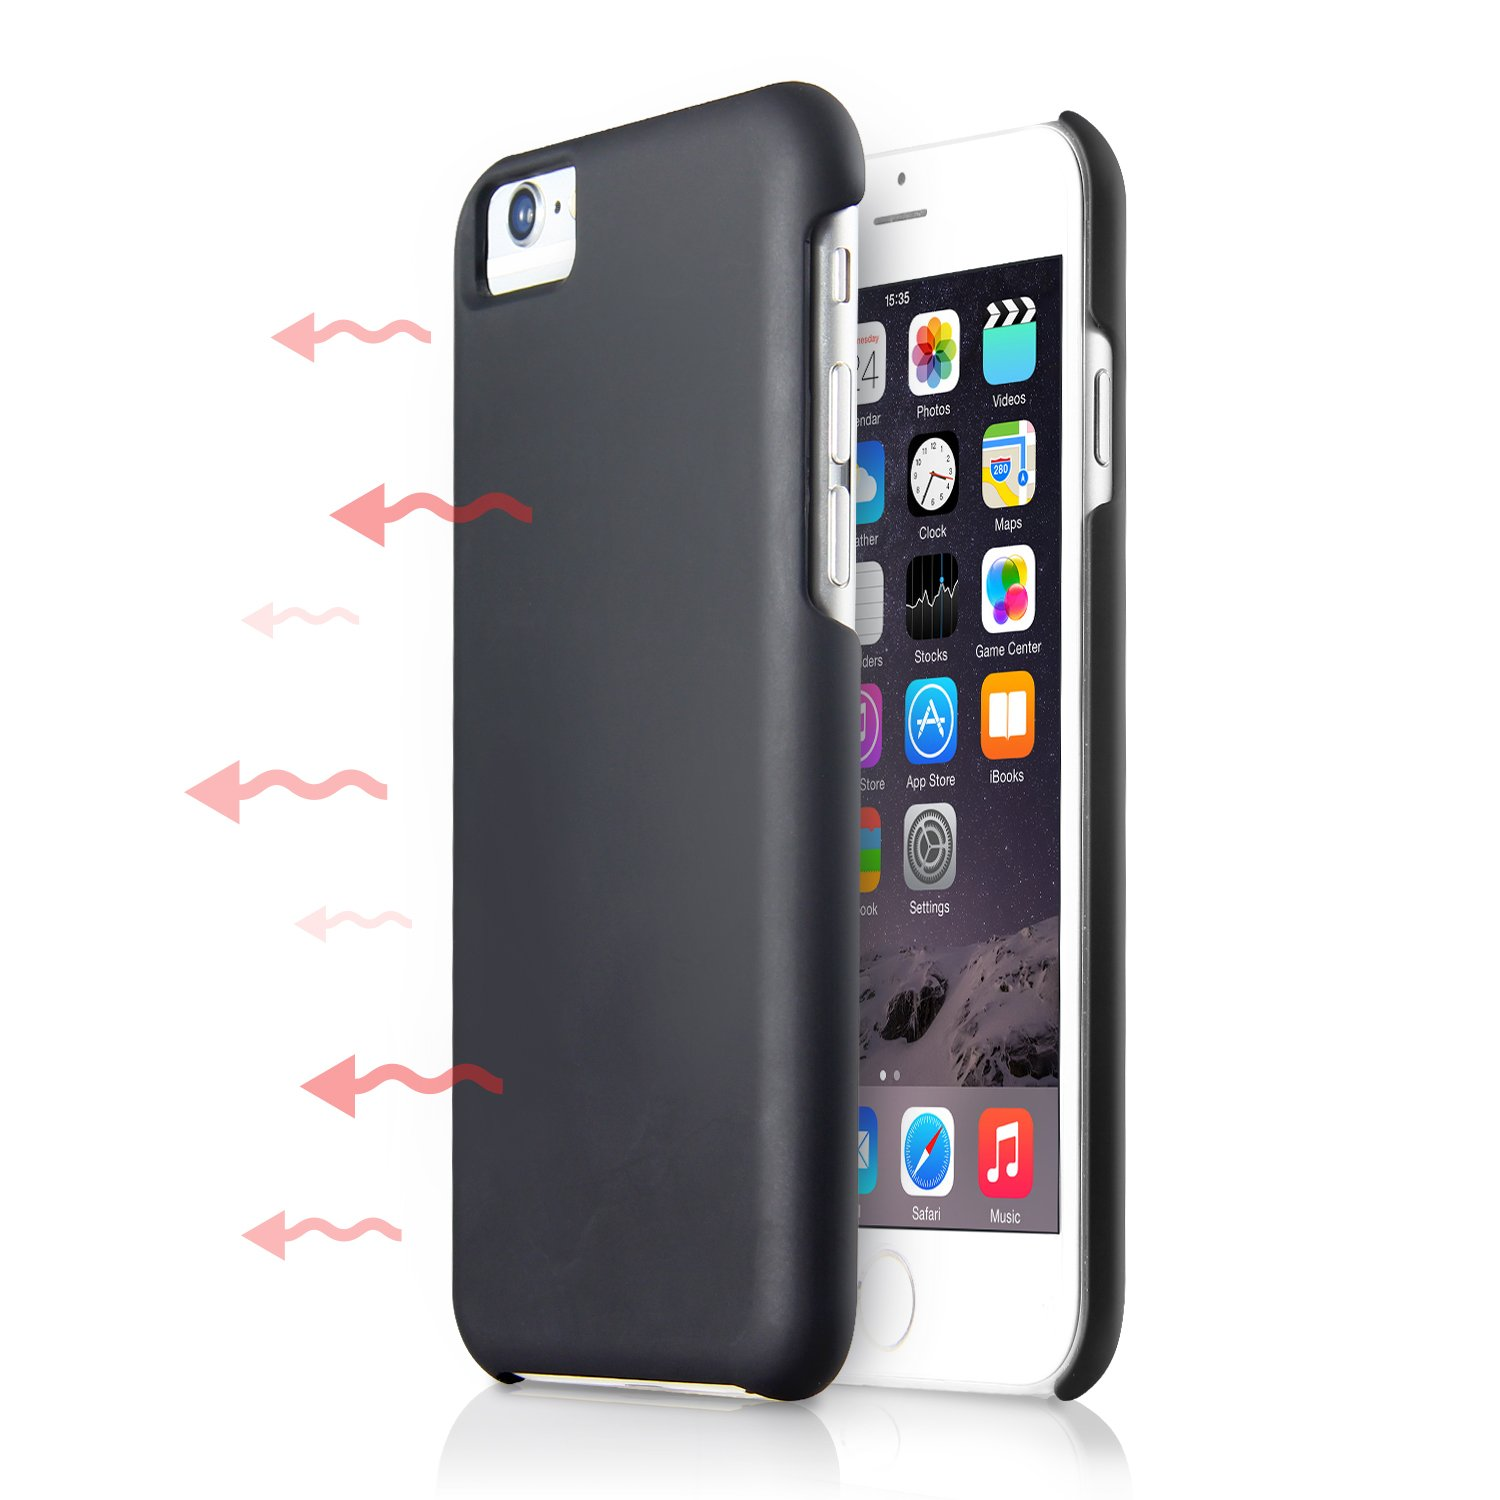 iPhone 8 Case W/Cooling Function, A Cell Phone Case W/Heat Absorption Technology to Prolong Lifetime of the Battery, PC Phone Cover for iPhone 7, iPhone 6, iPhone 6s, Black